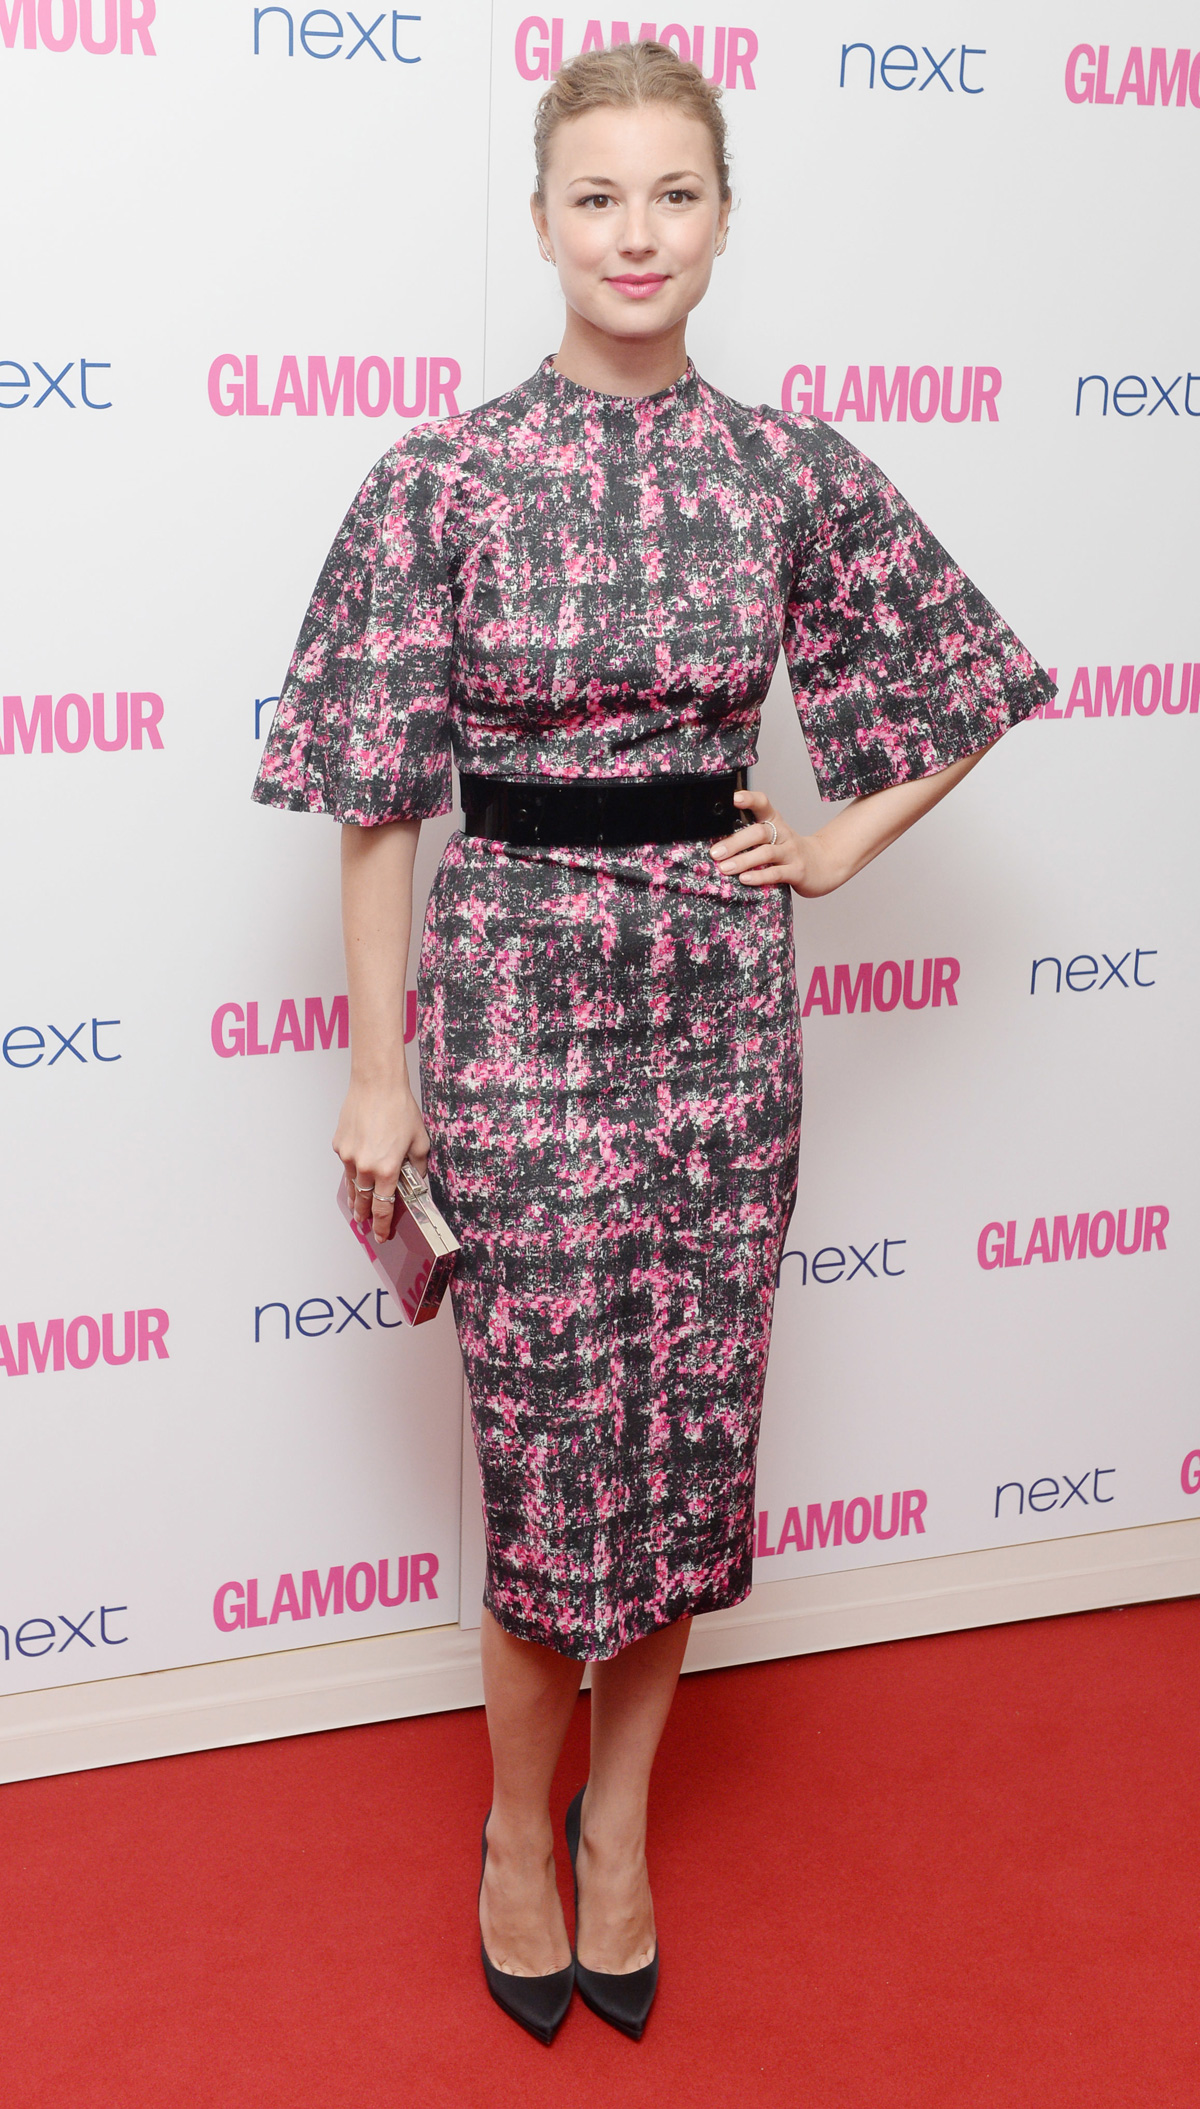 Emily VanCamp at the Glamour Women of the Year Awards